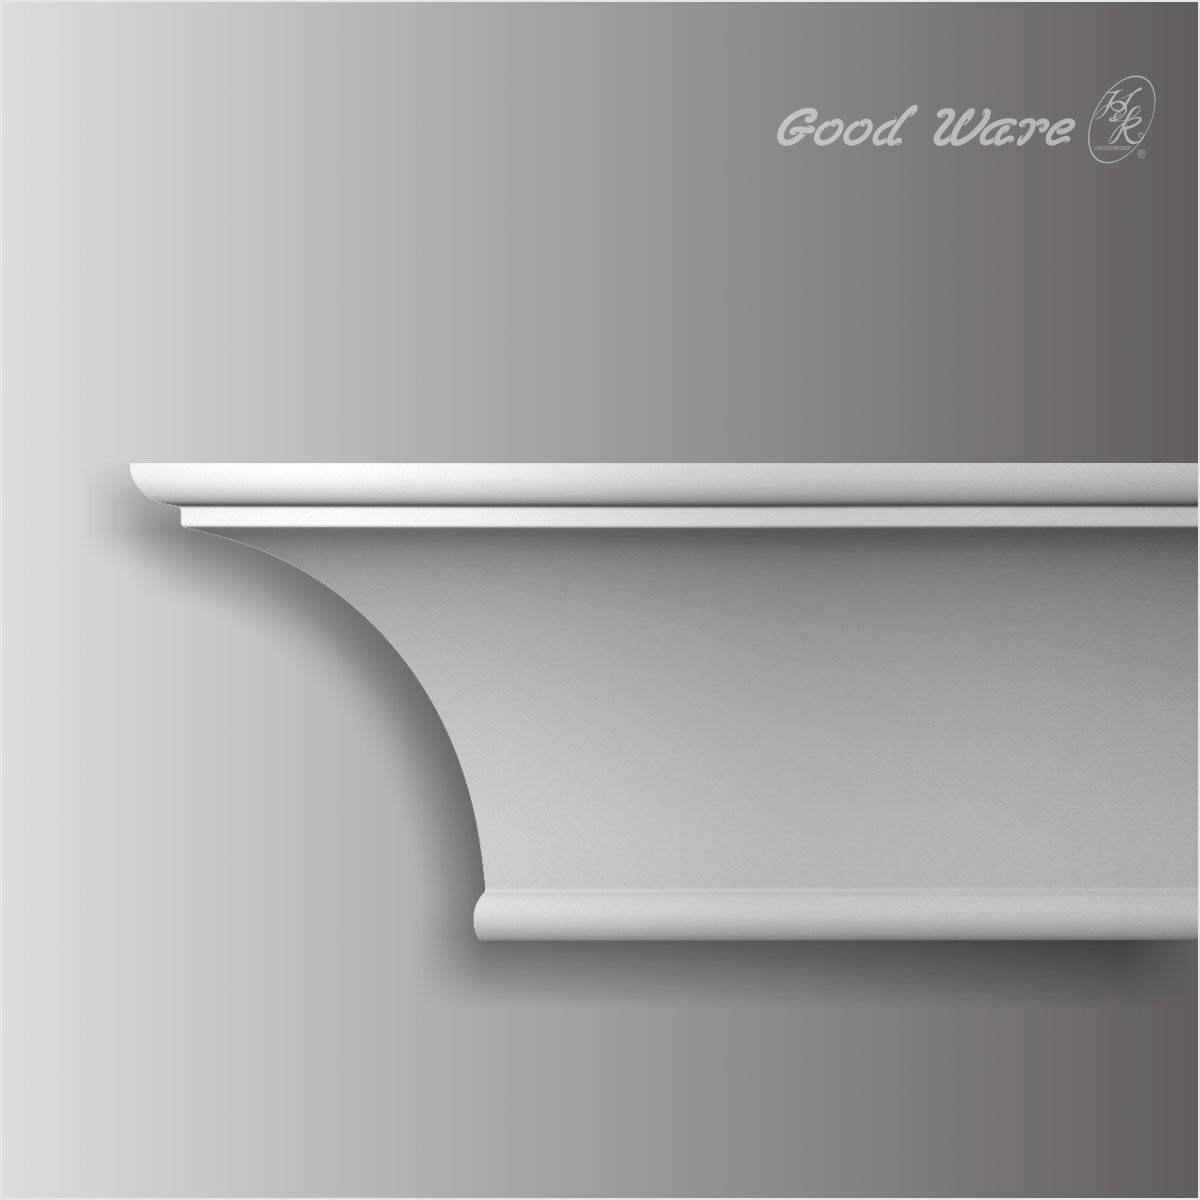 Cove 9 Inch Crown Moulding